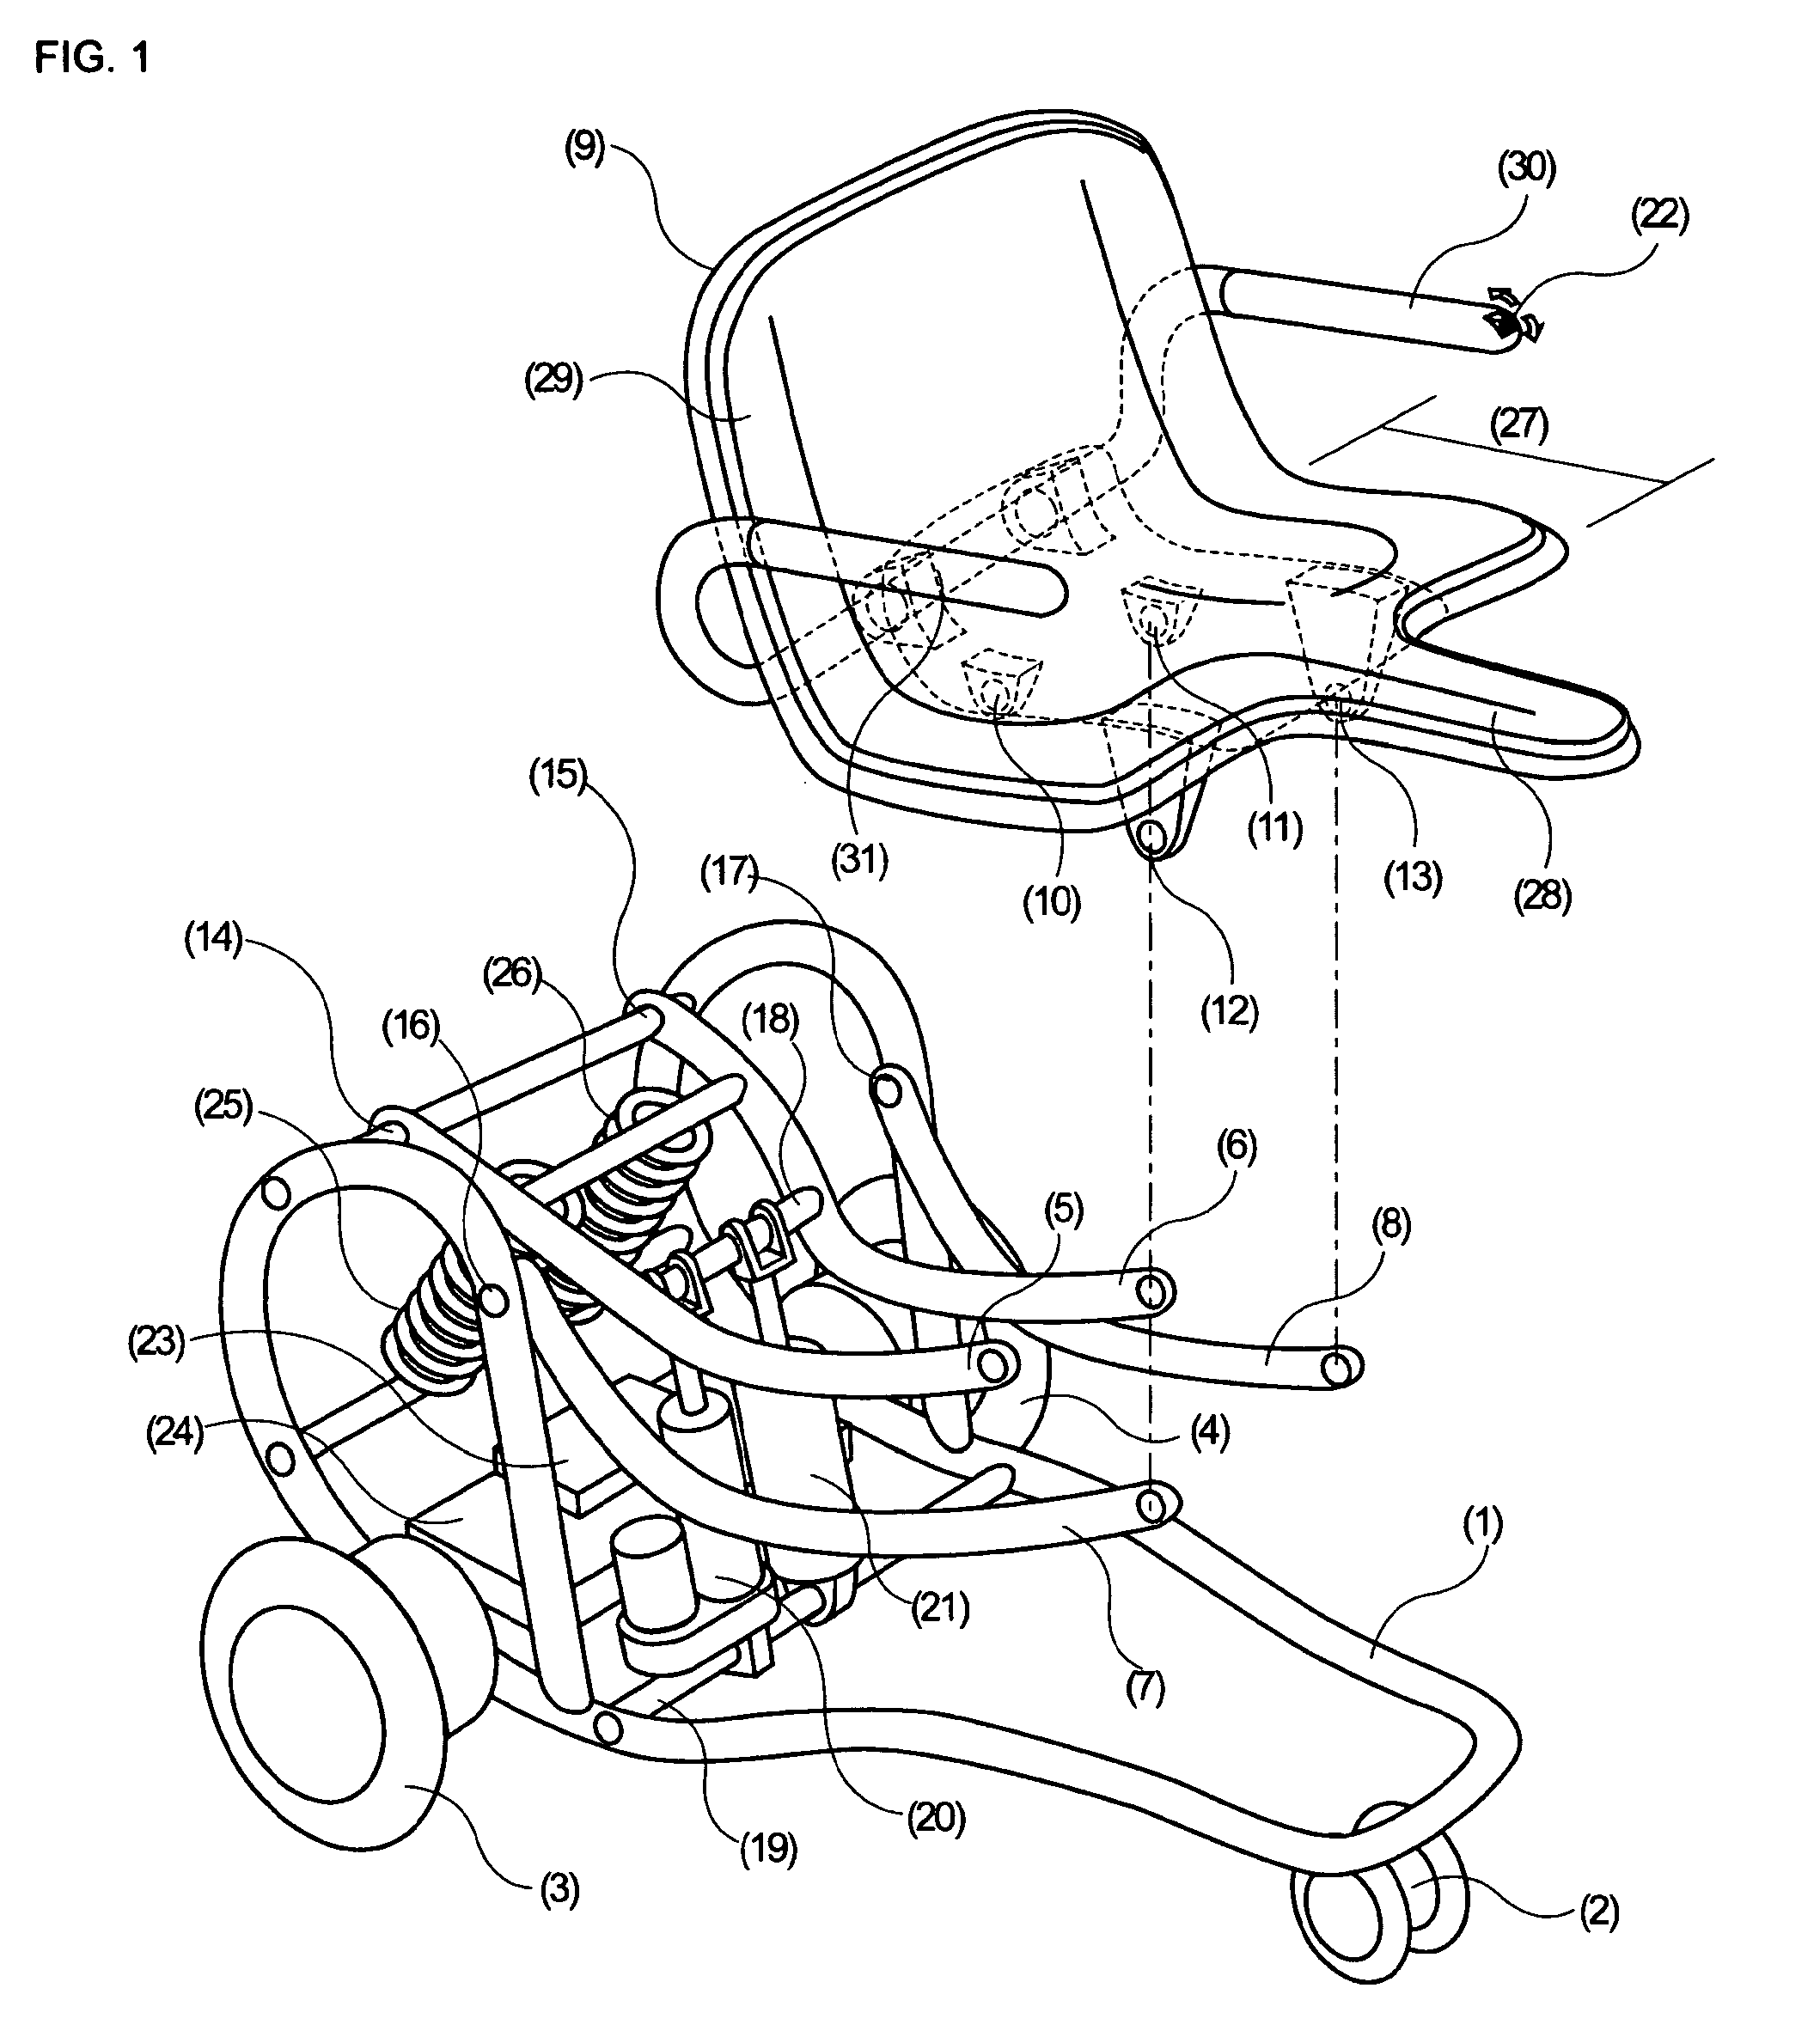 patent us8210295 - electric wheelchair